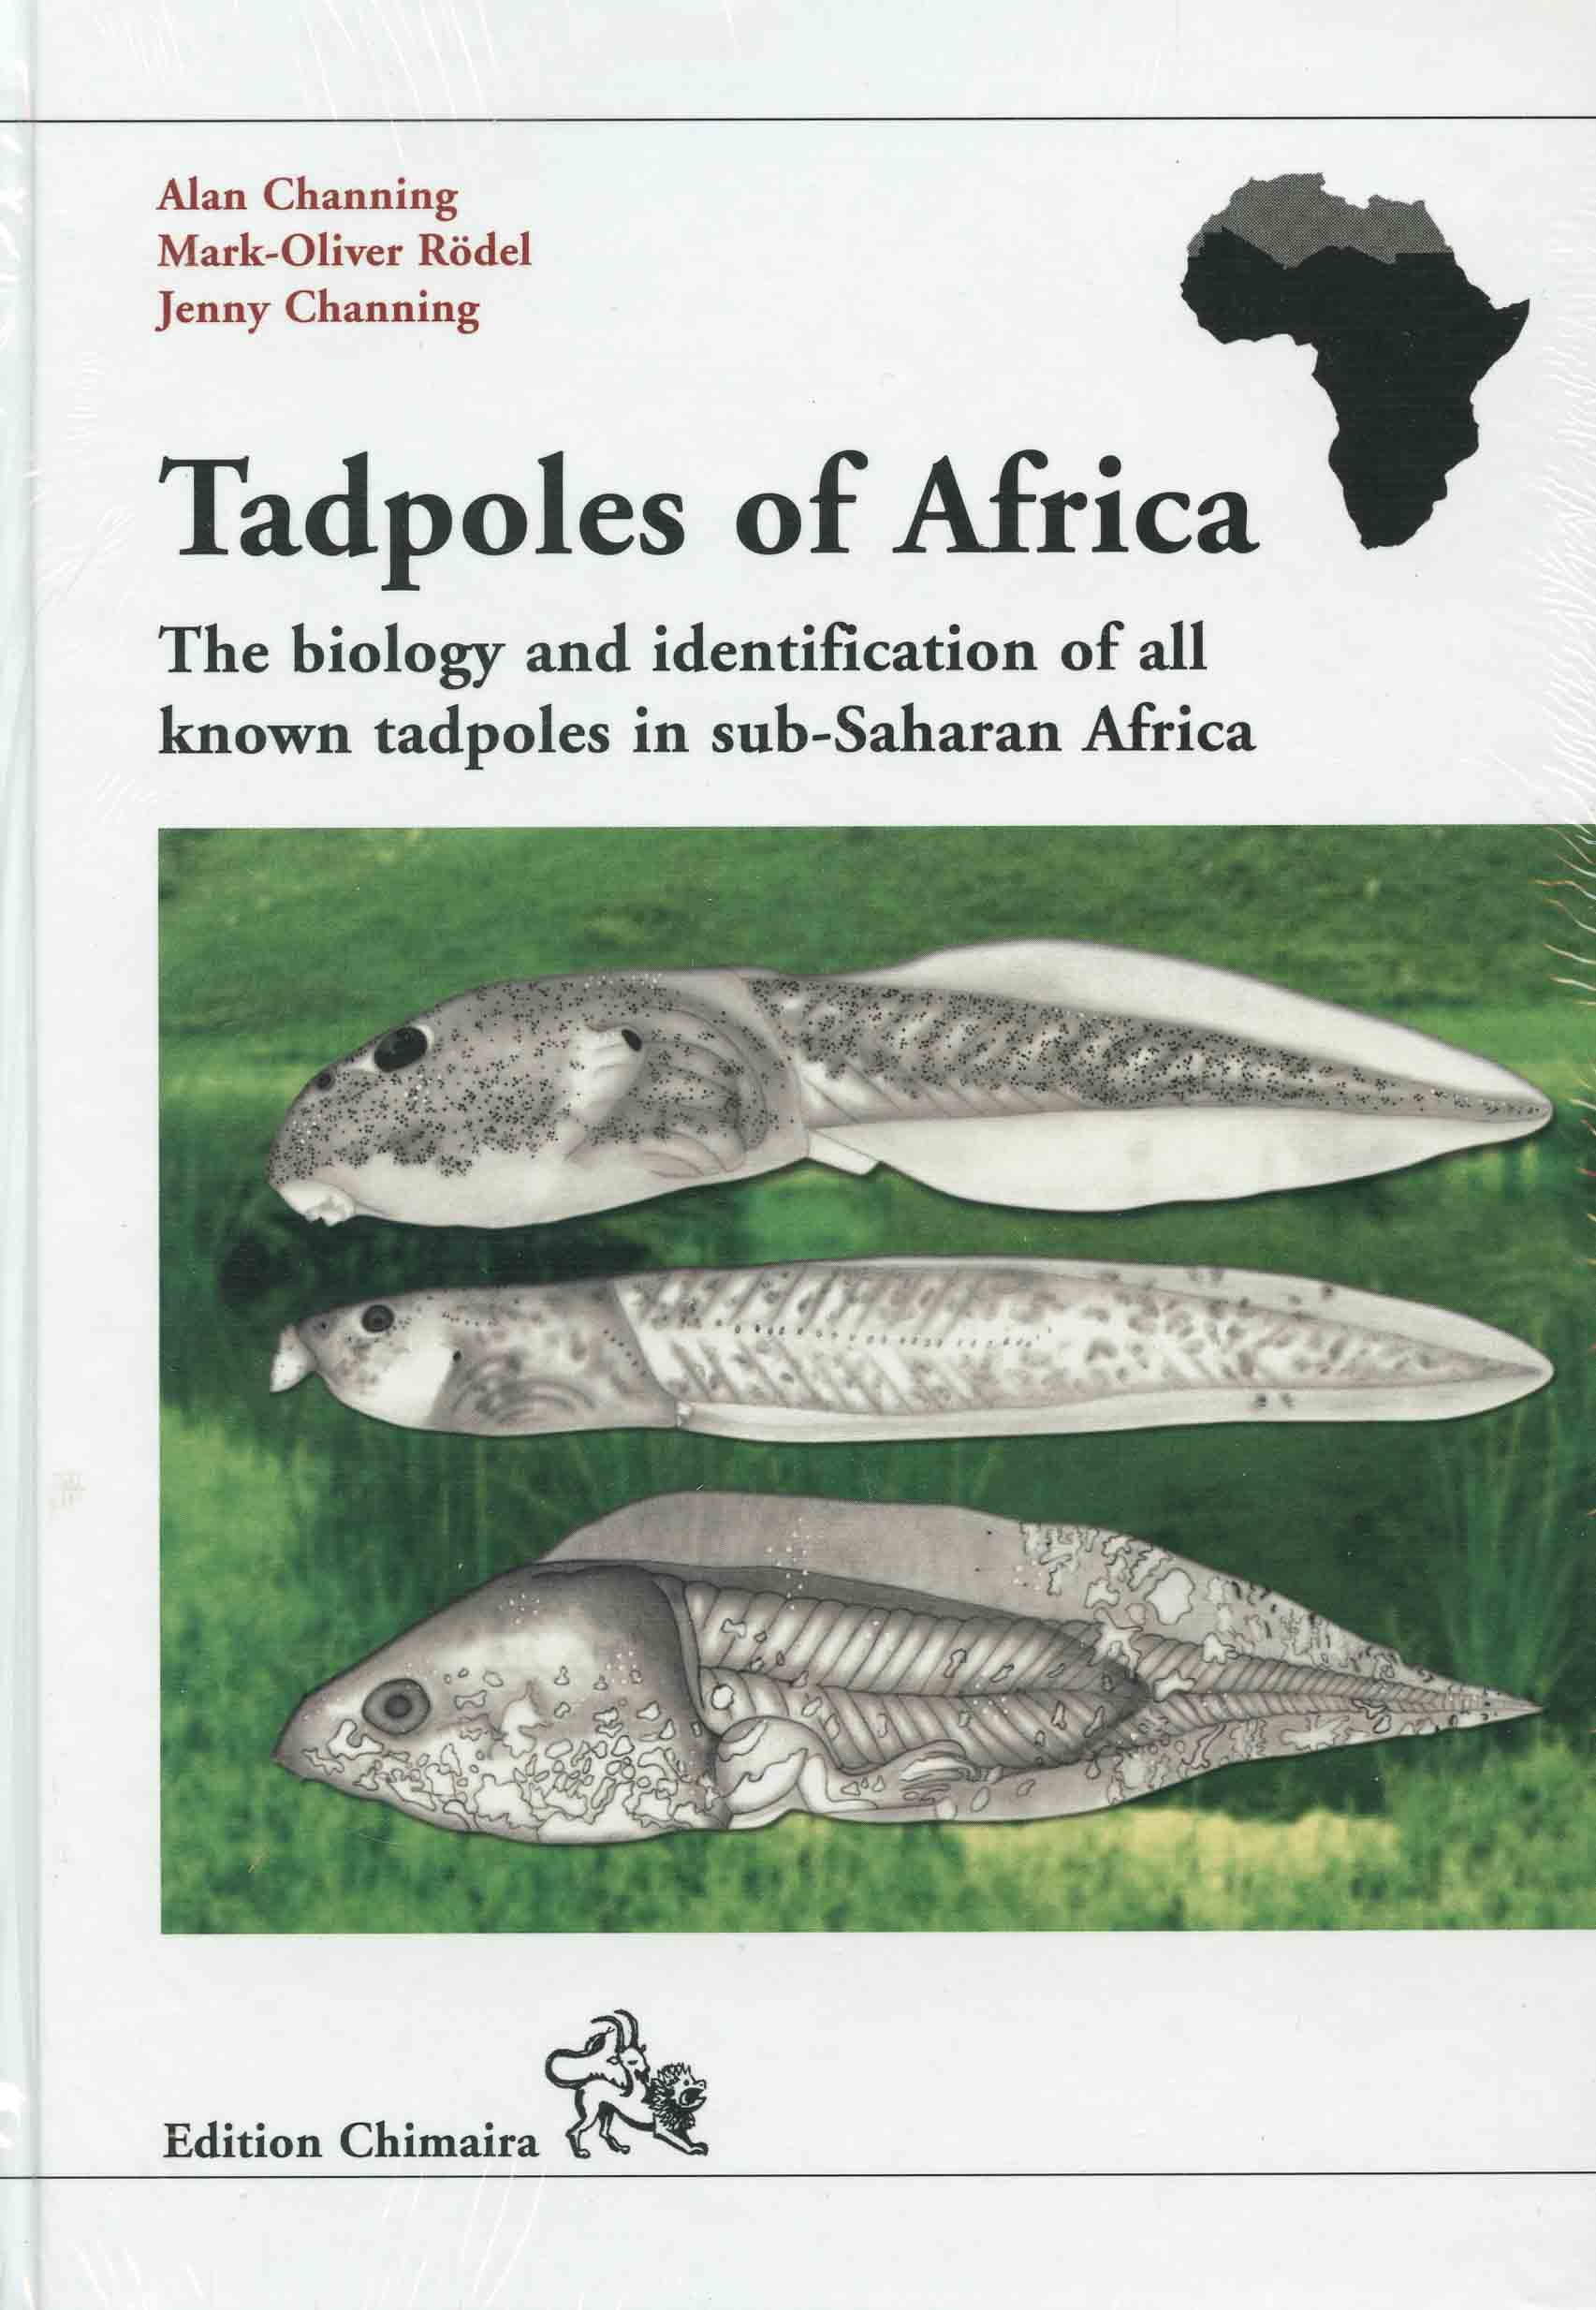 Image for Tadpoles of Africa: The Biology and Identification of all Known Tadpoles in Sub-Saharan Africa,